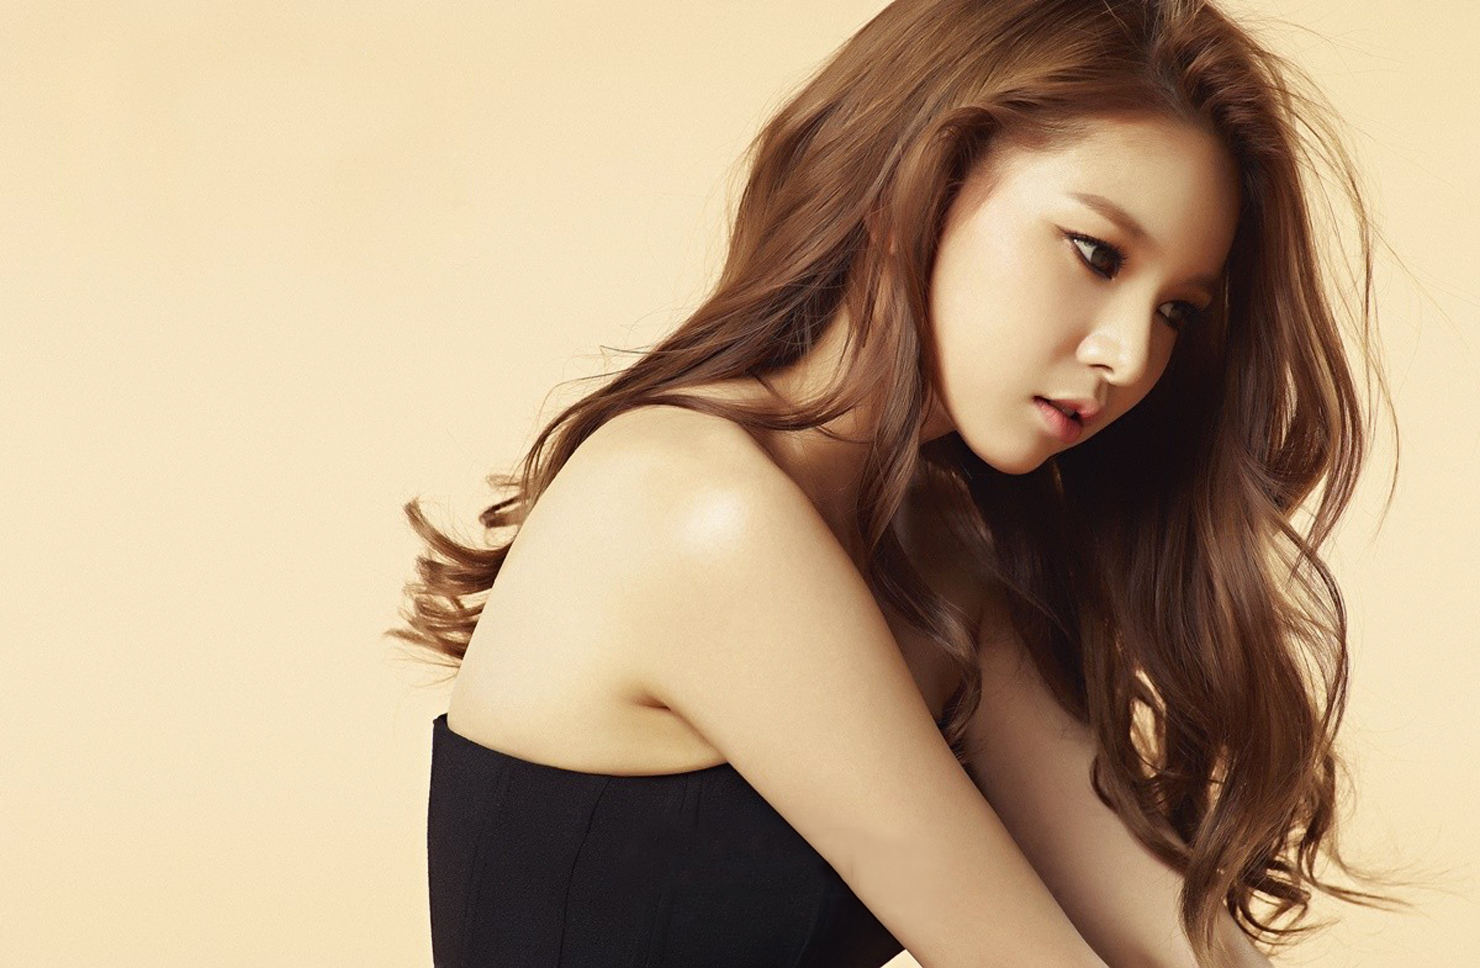 https://i1.wp.com/images6.fanpop.com/image/photos/38100000/Fiestar-s-Jei-for-HIM-Magazine-March-2015-fiestar-38186457-1480-968.jpg